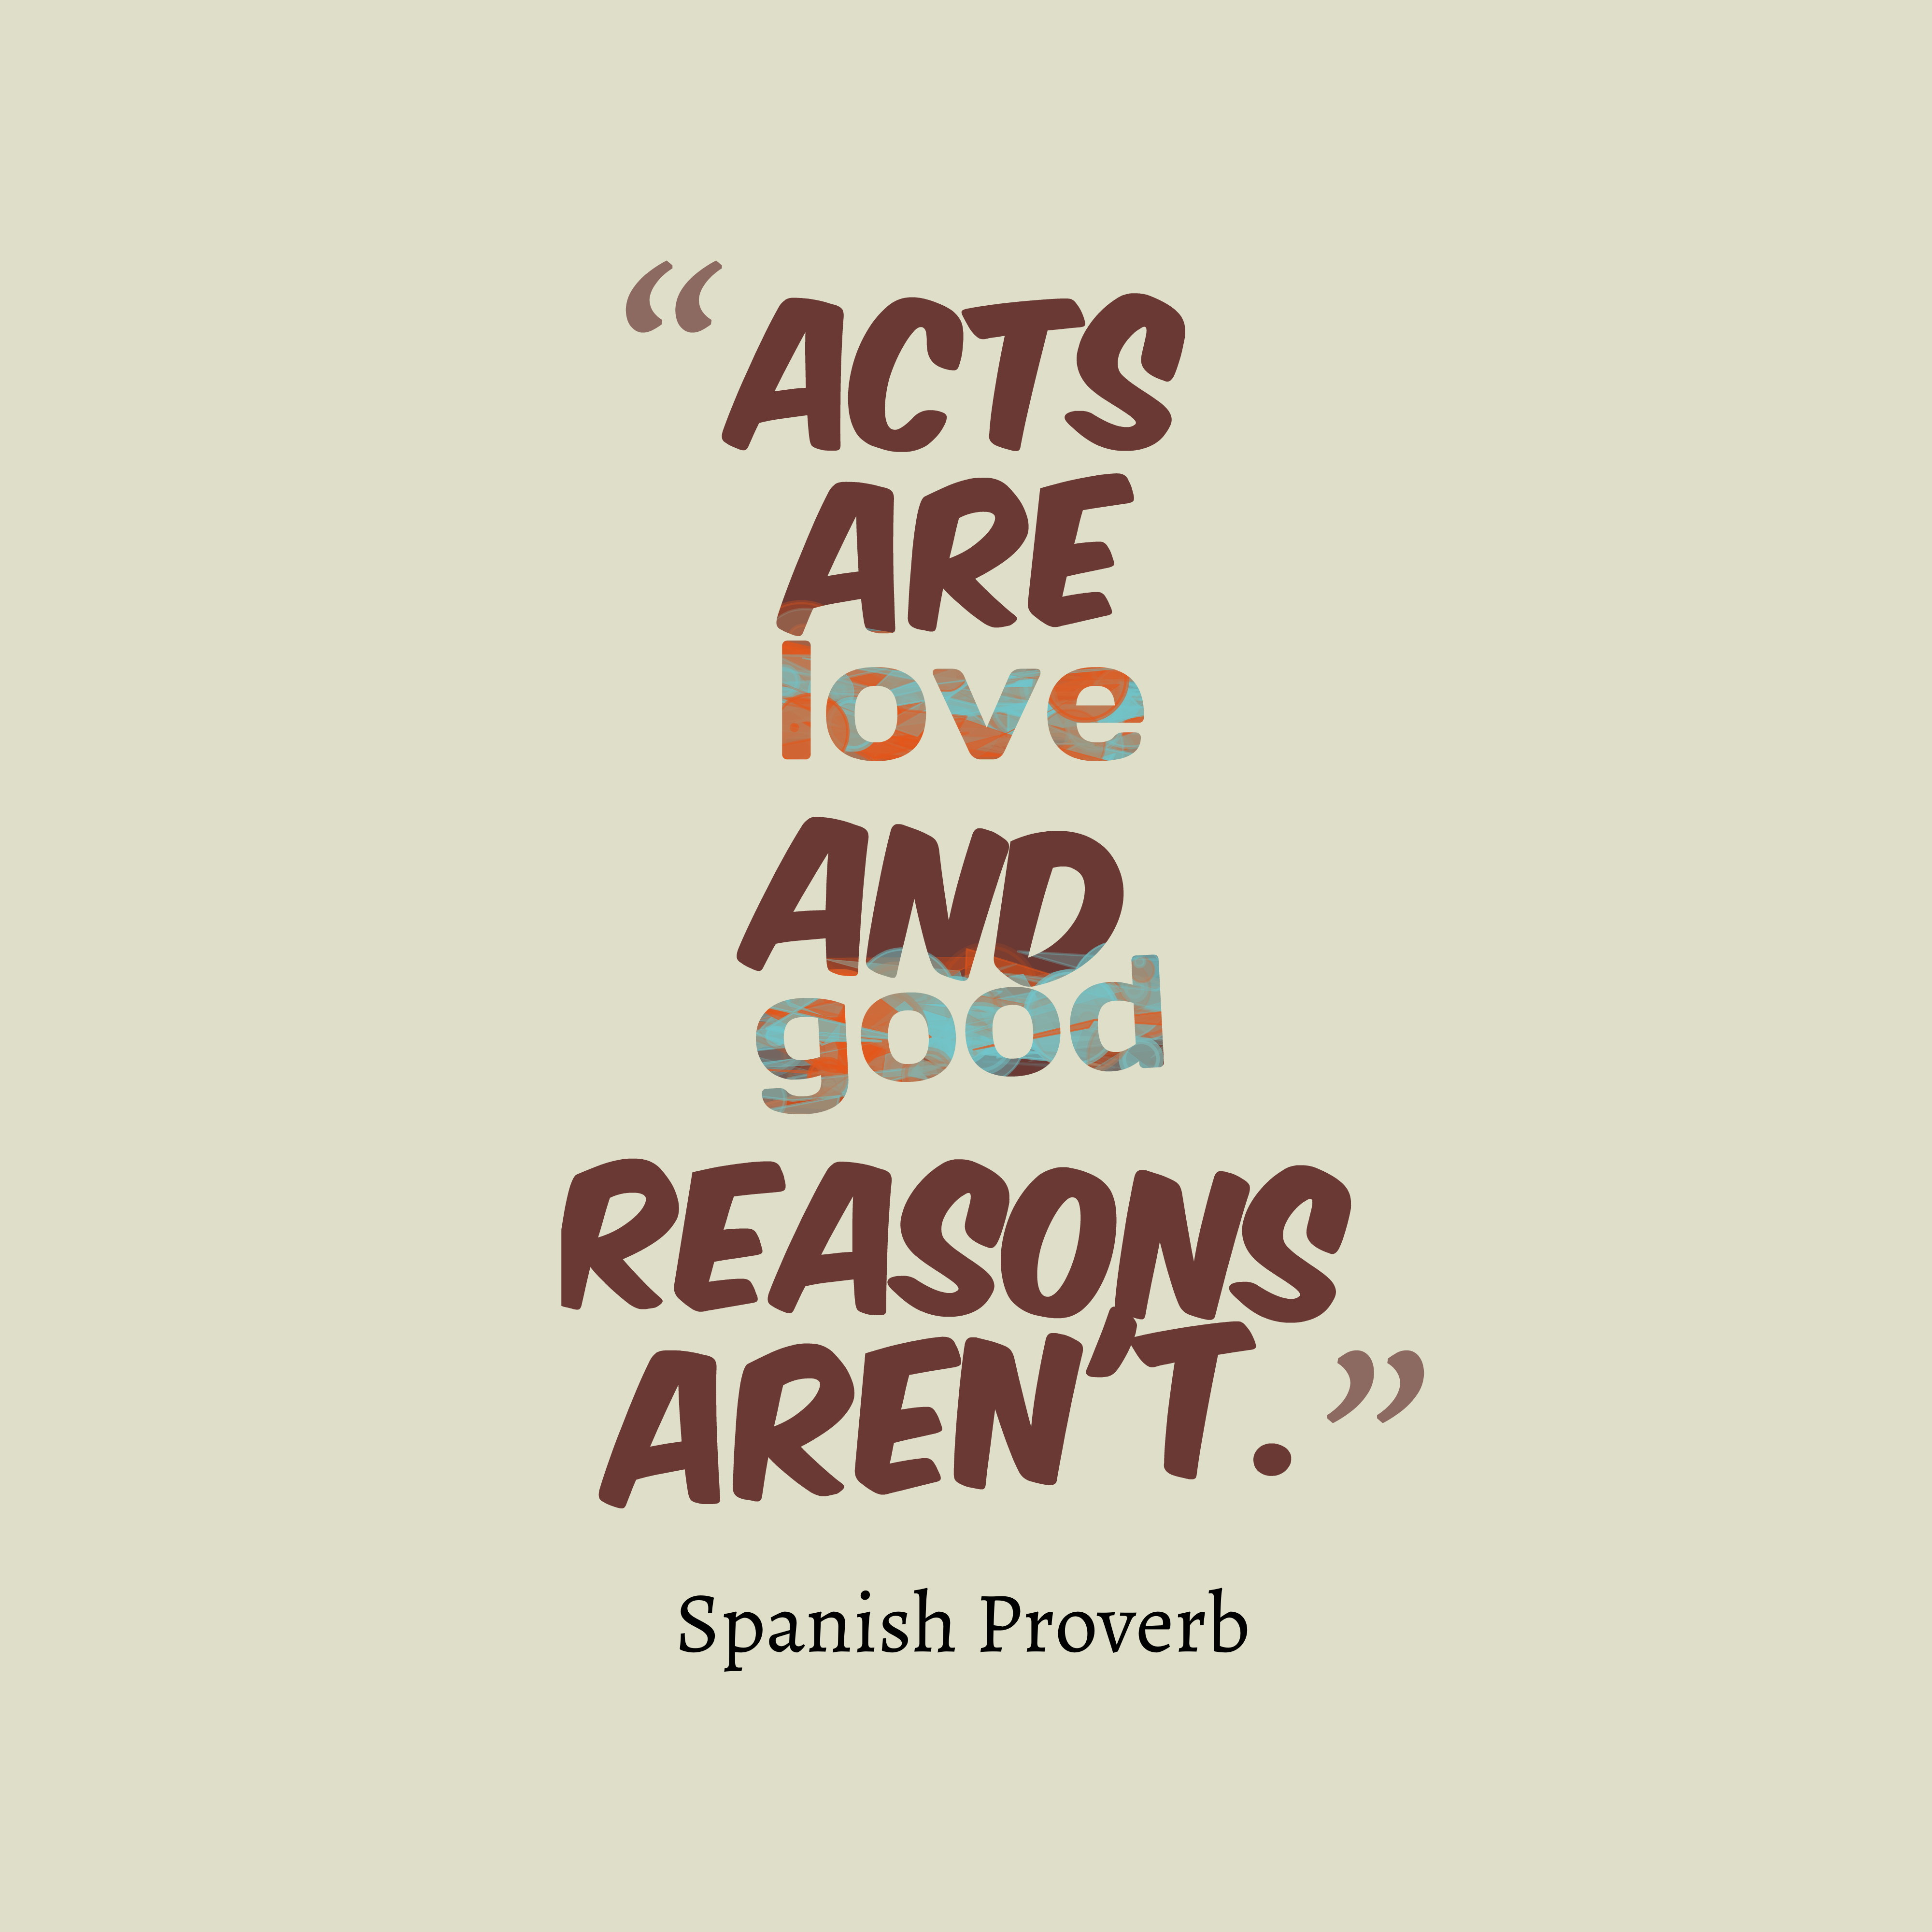 Quotes image of  Acts are love and good reasons aren't.